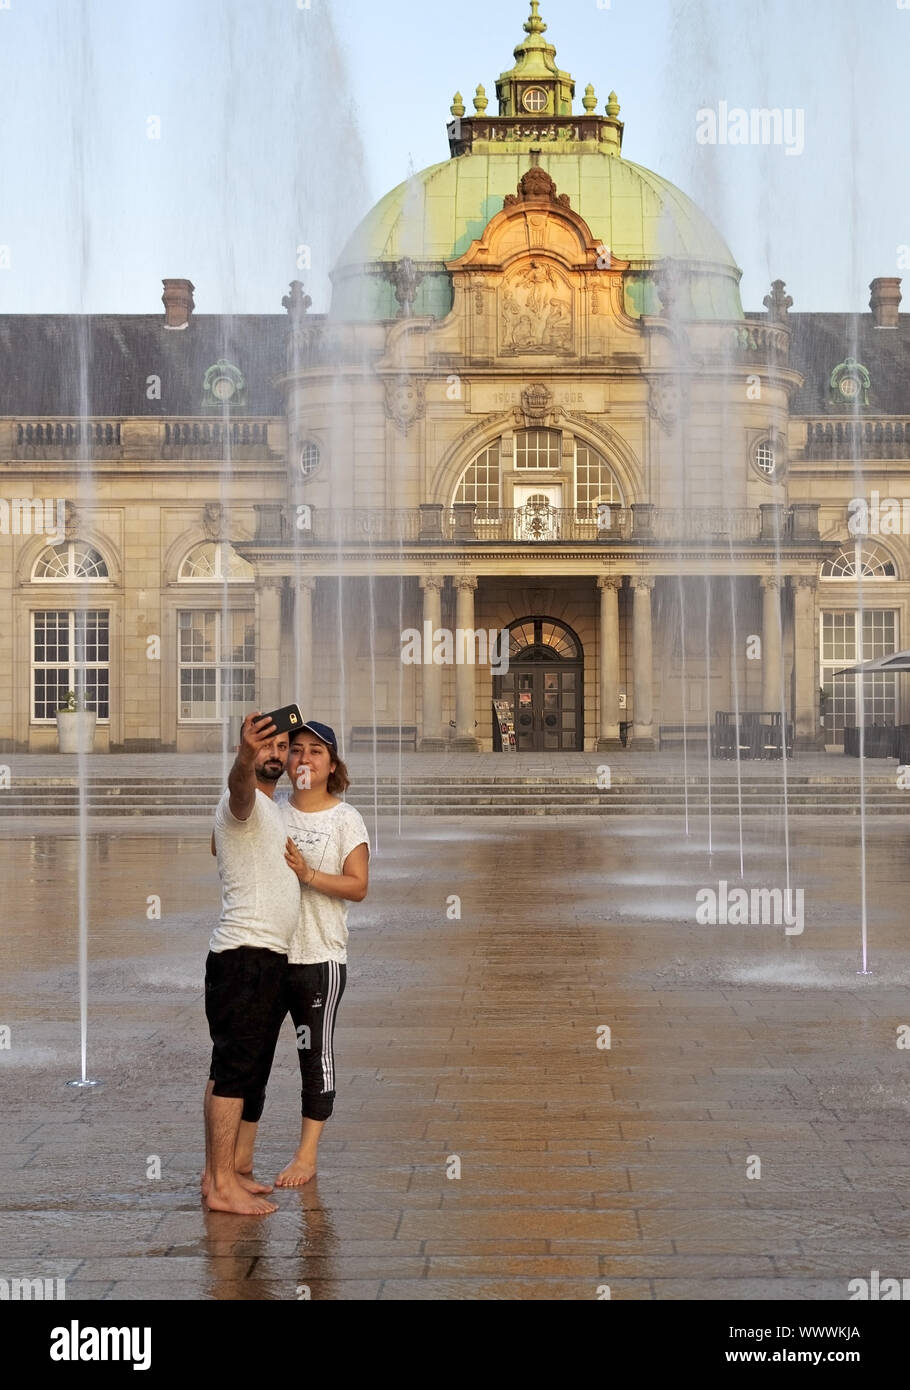 Couple makes a selfie in front of the the imperial palace, Bad Oeynhausen, Germany, Europe Stock Photo